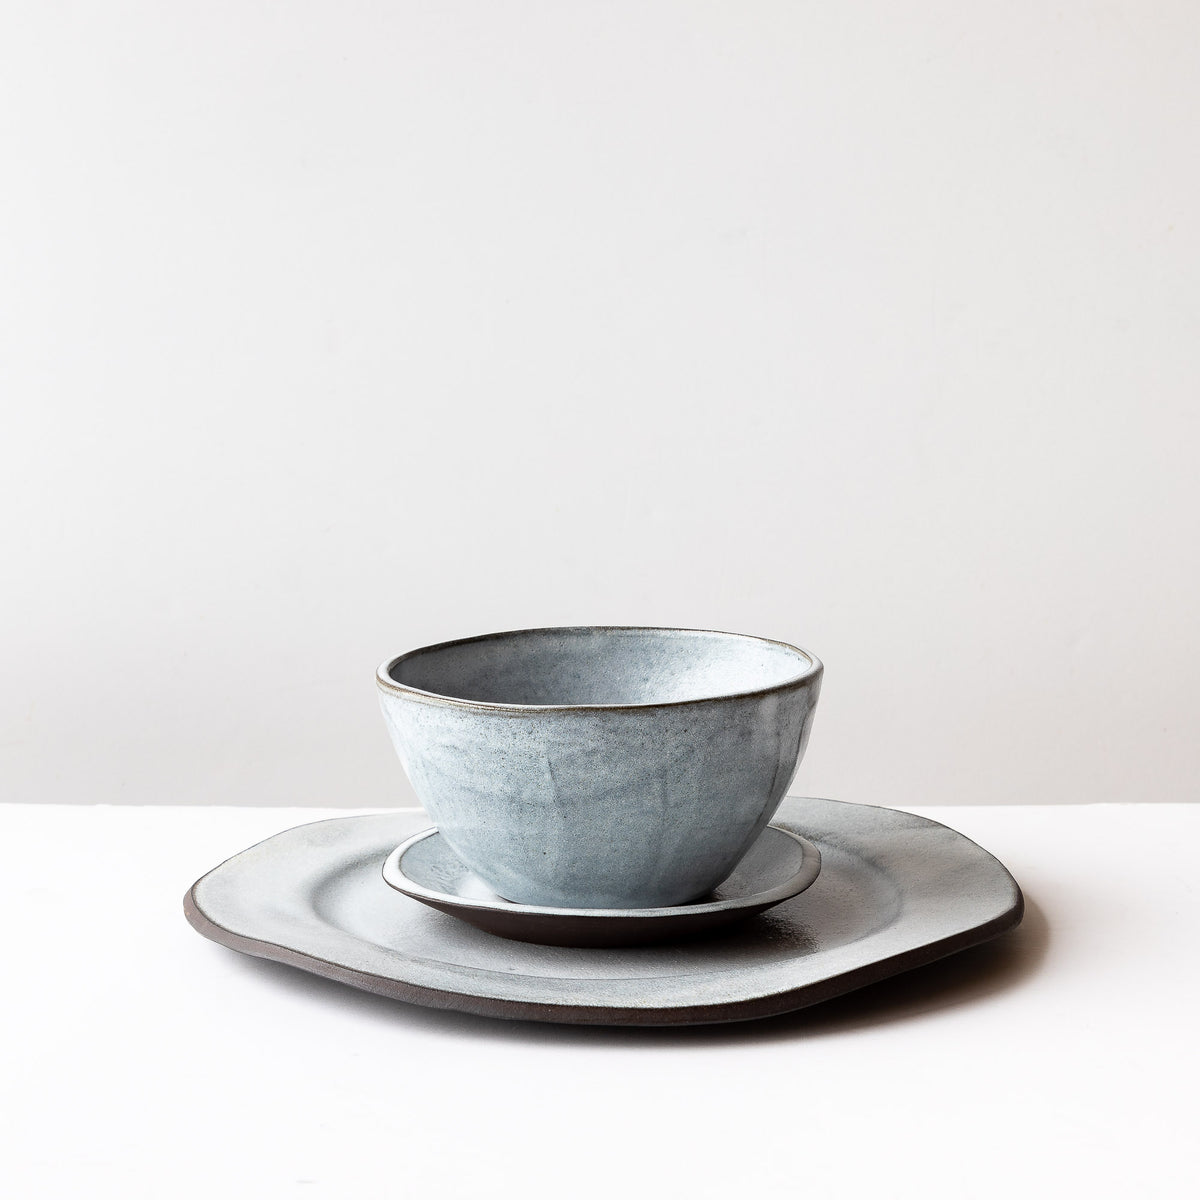 Side View - Handmade 3-Piece Dinnerware Set - In Grey & White Stoneware - Sold by Chic & Basta